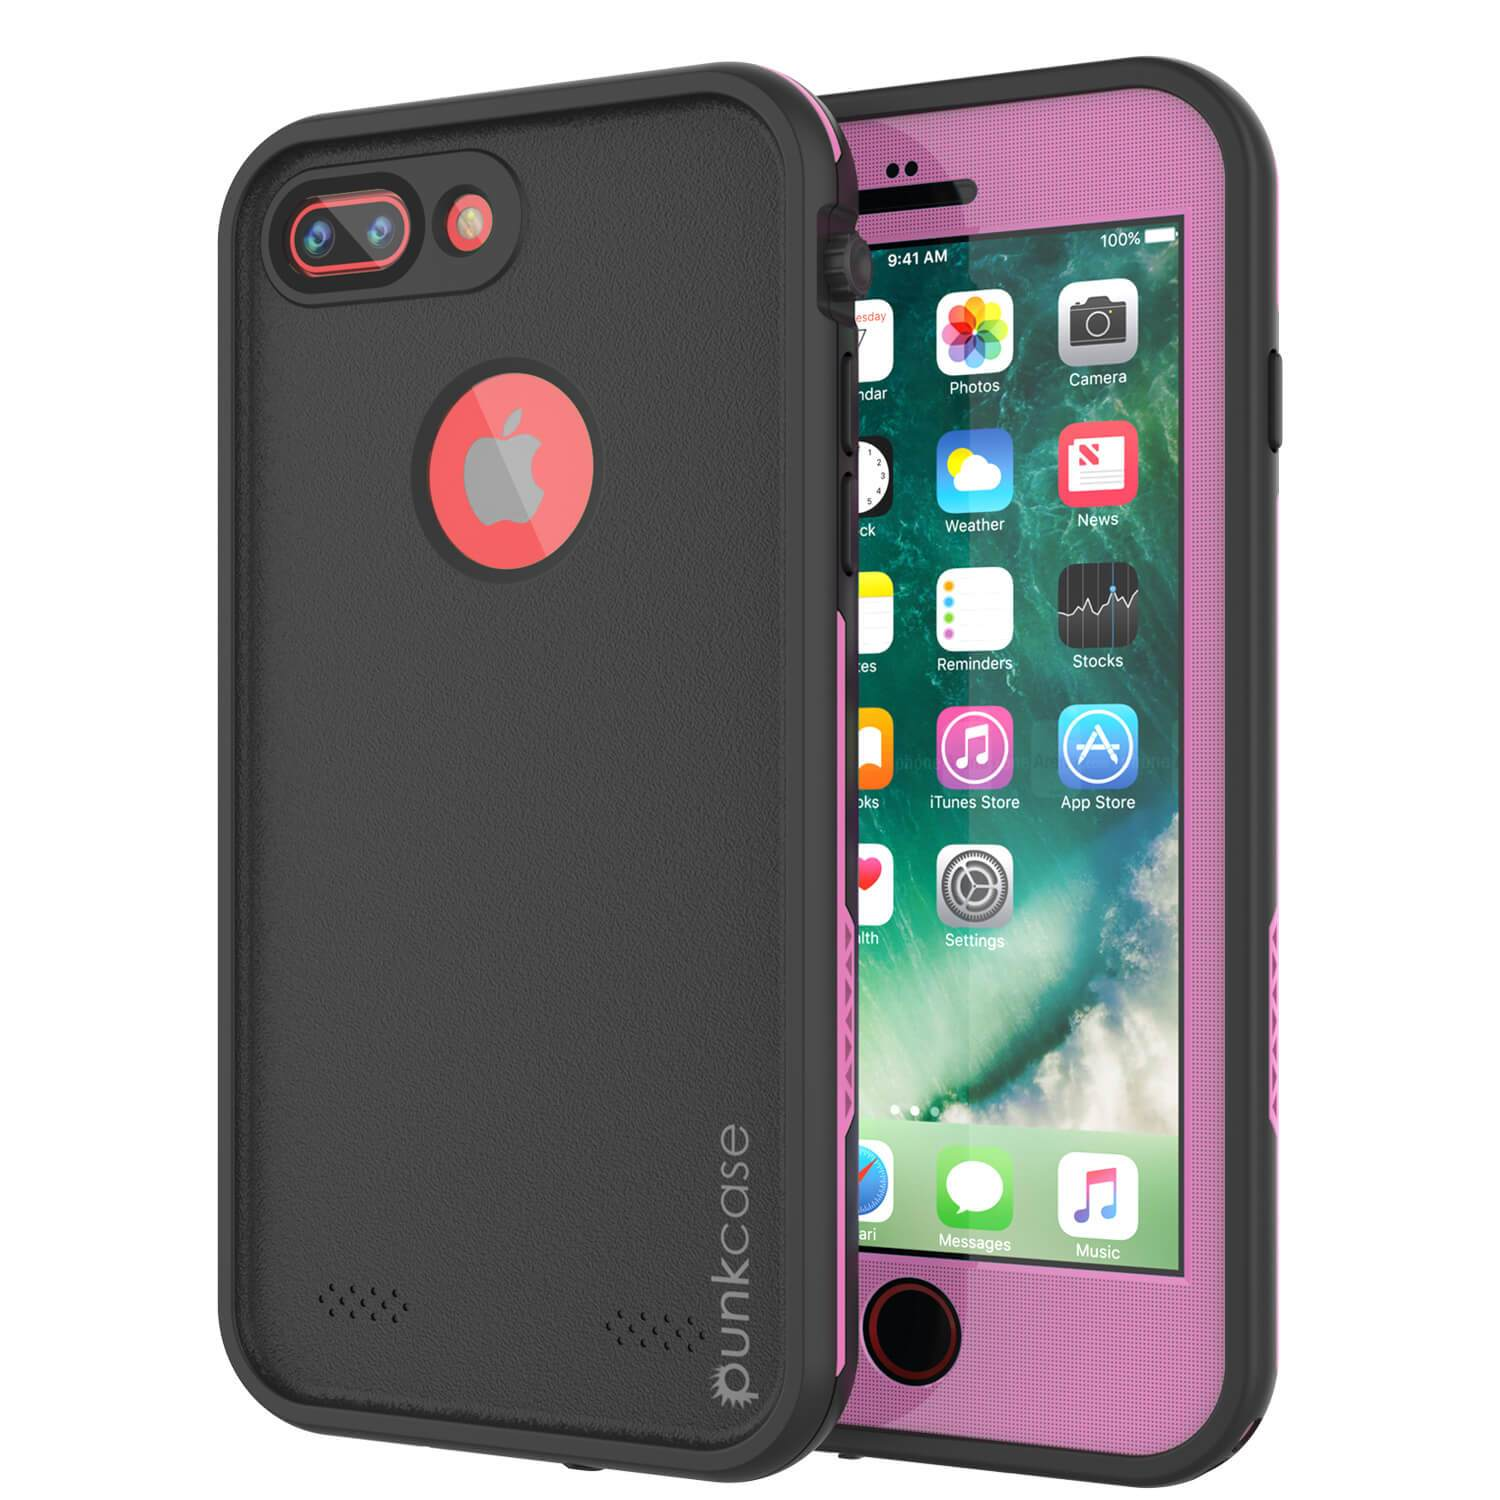 iPhone 7+ Plus Waterproof Case, Punkcase SpikeStar Pink Series | Thin Fit 6.6ft Underwater IP68